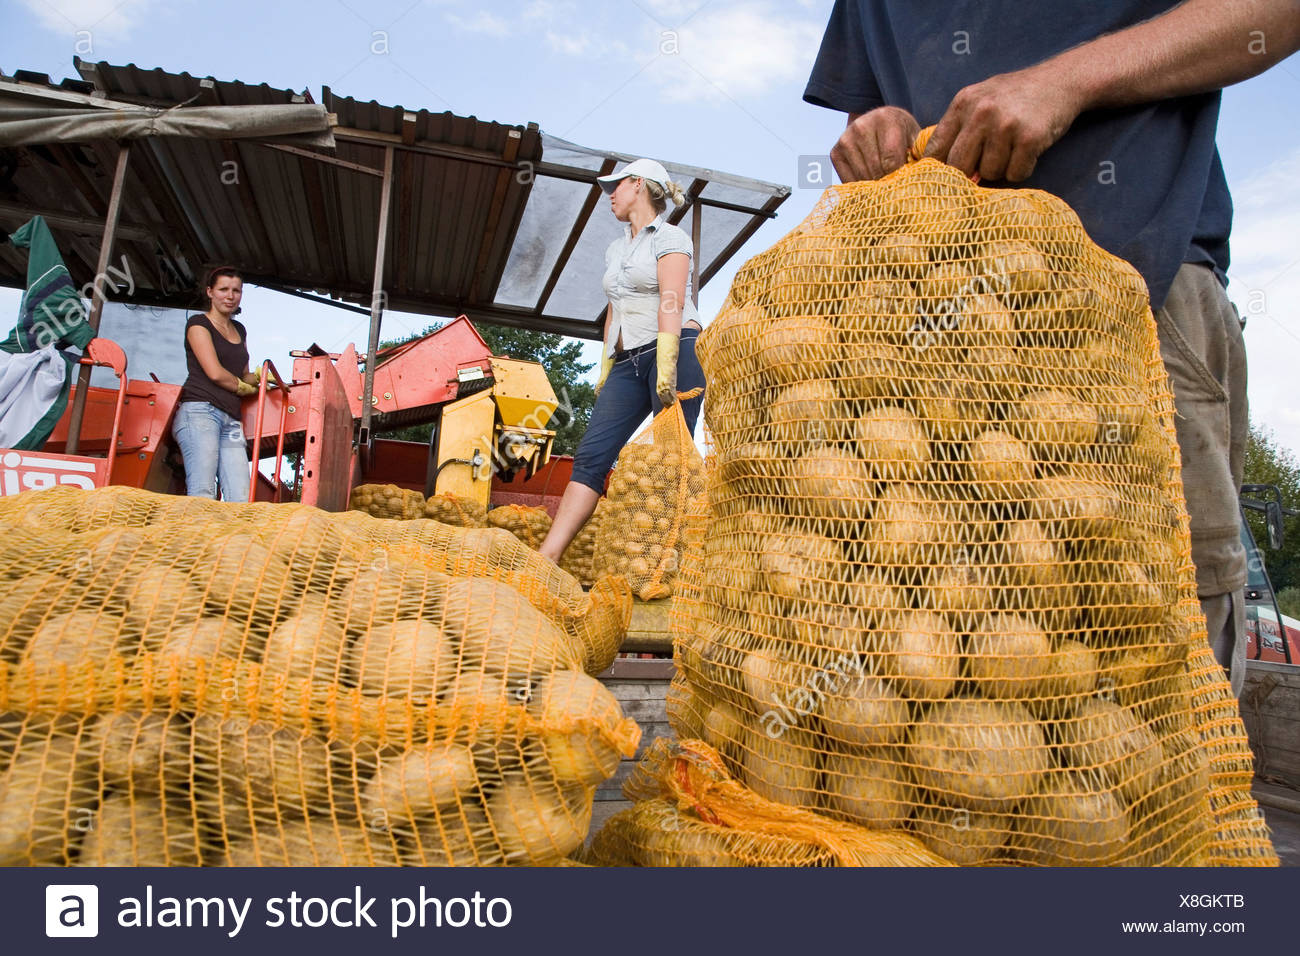 workers, sacks of potatoes, Lower Saxony, Northern Germany - Stock Image